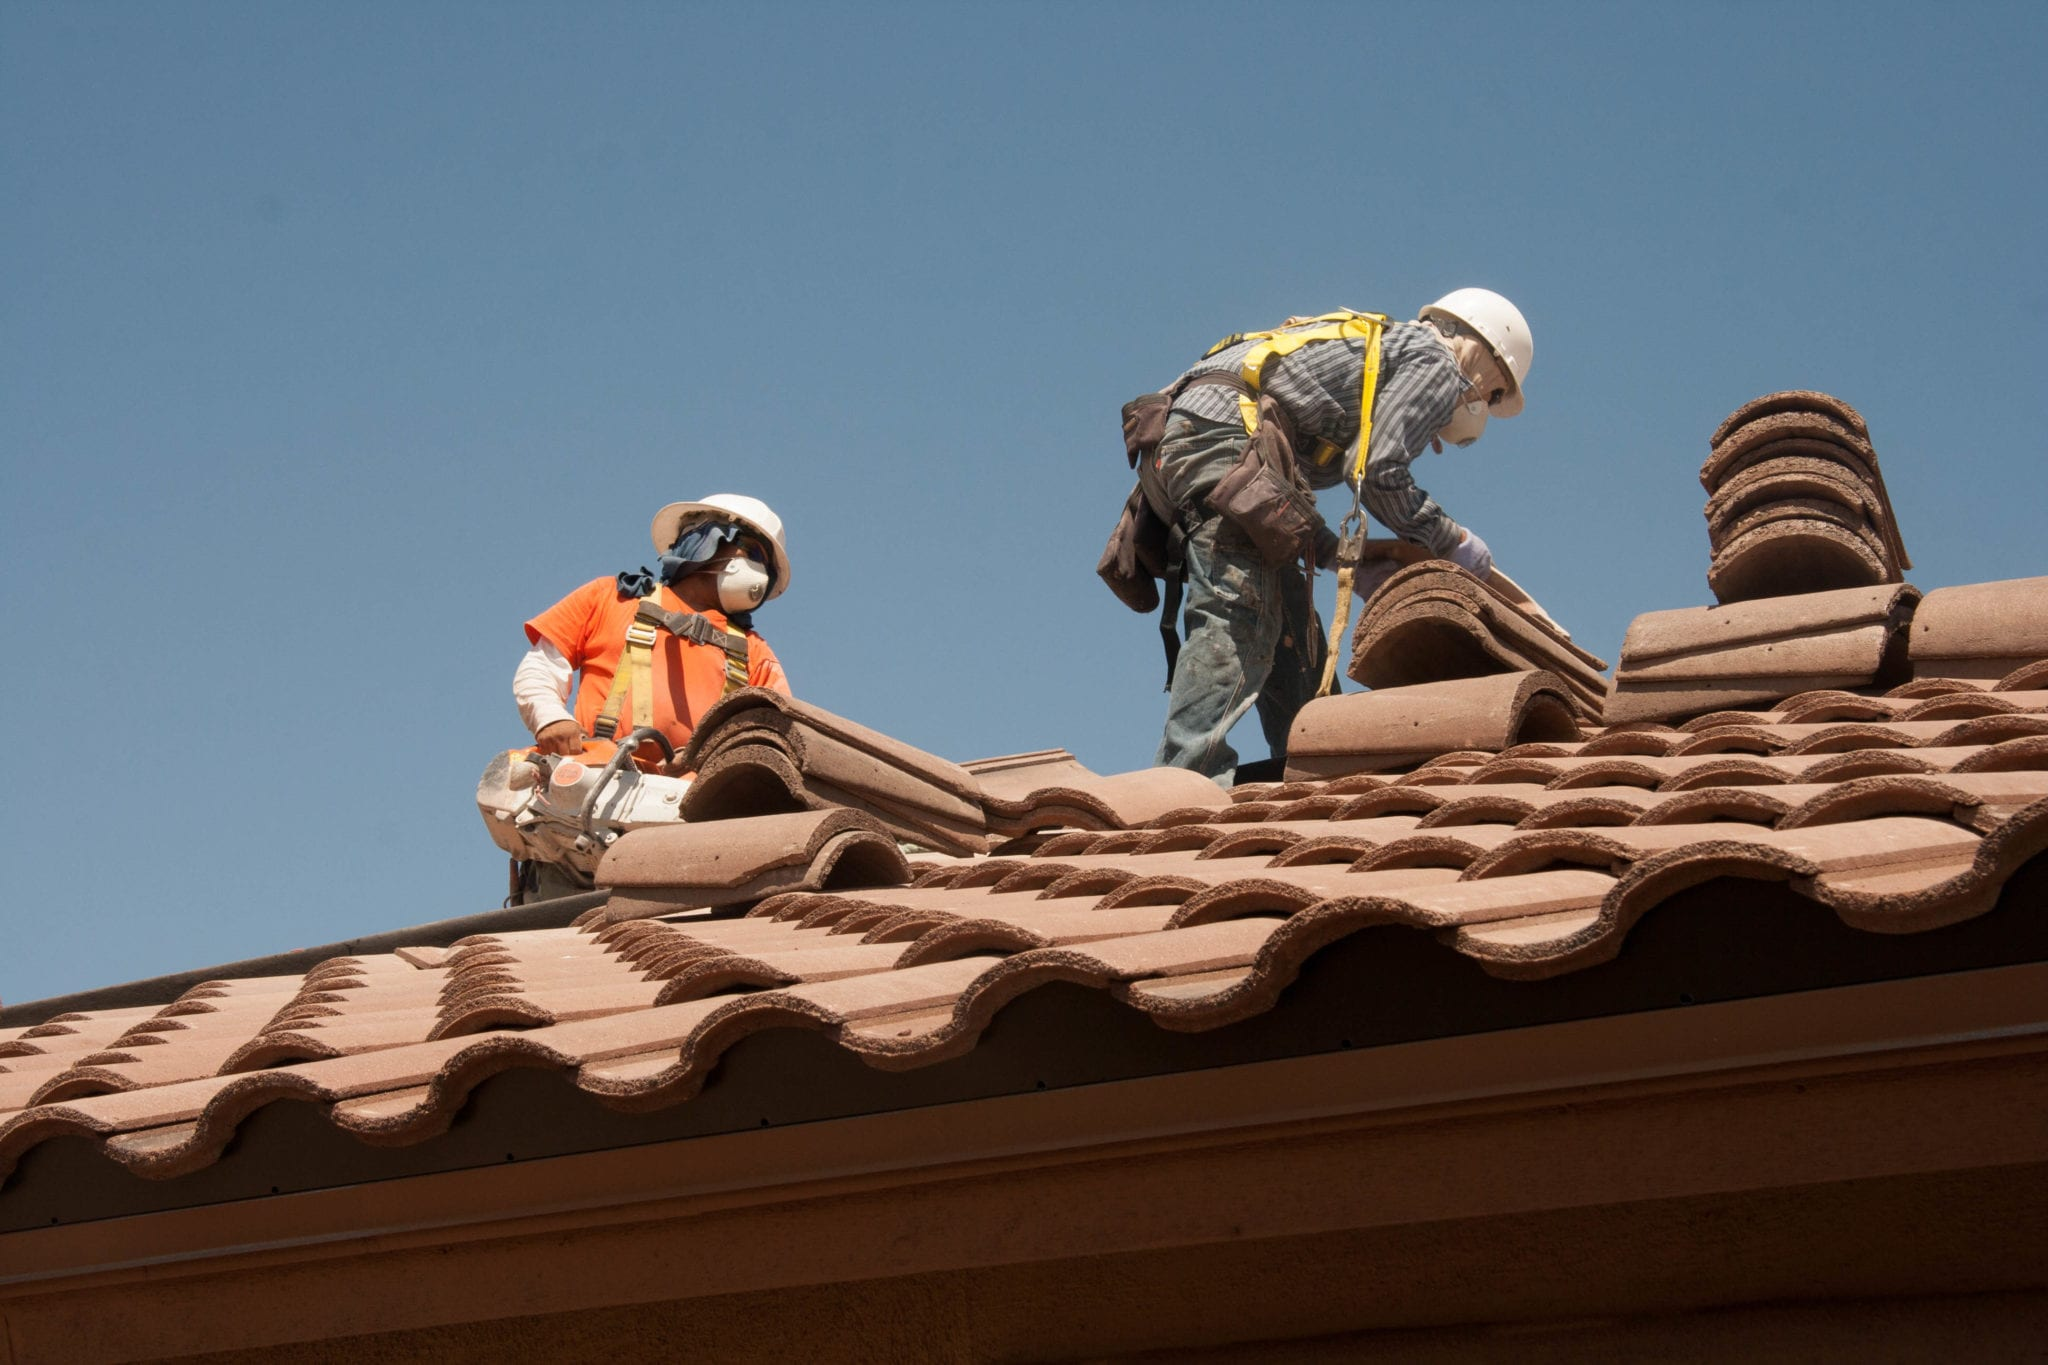 roofing contractor liability risks